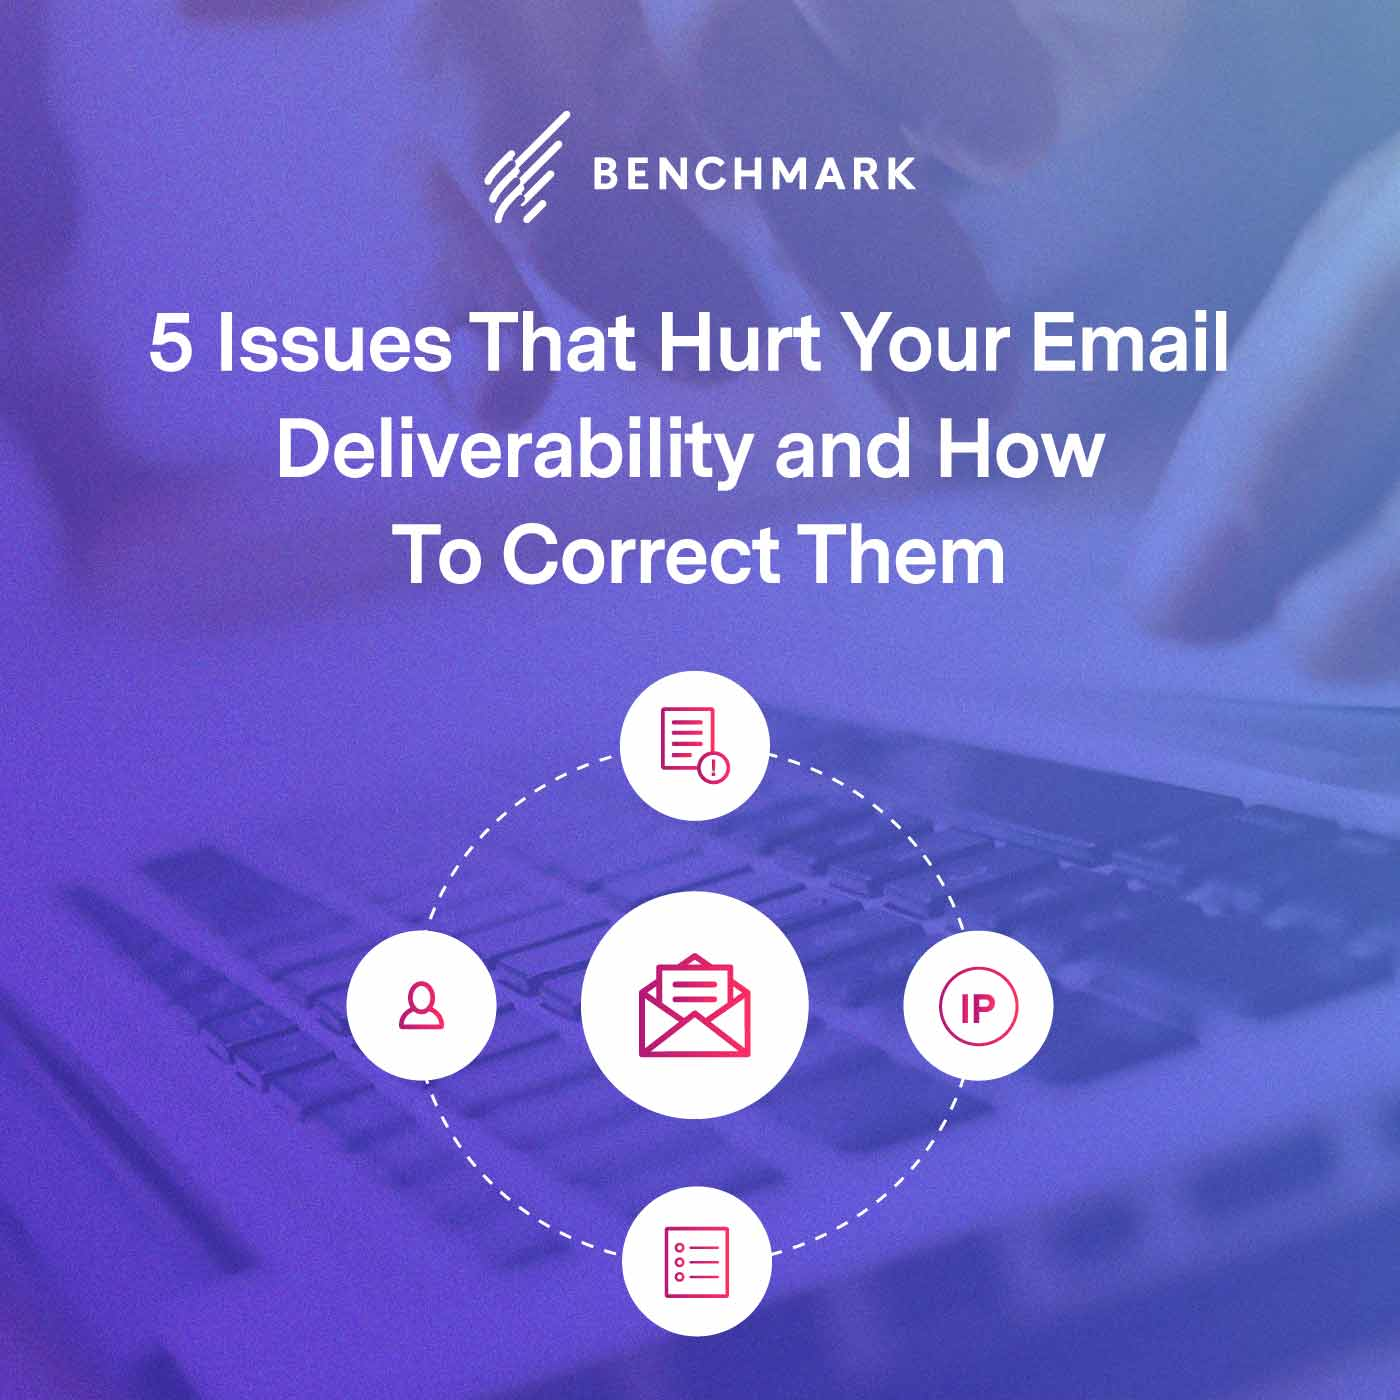 5 Issues That Hurt Your Email Deliverability and How To Correct Them